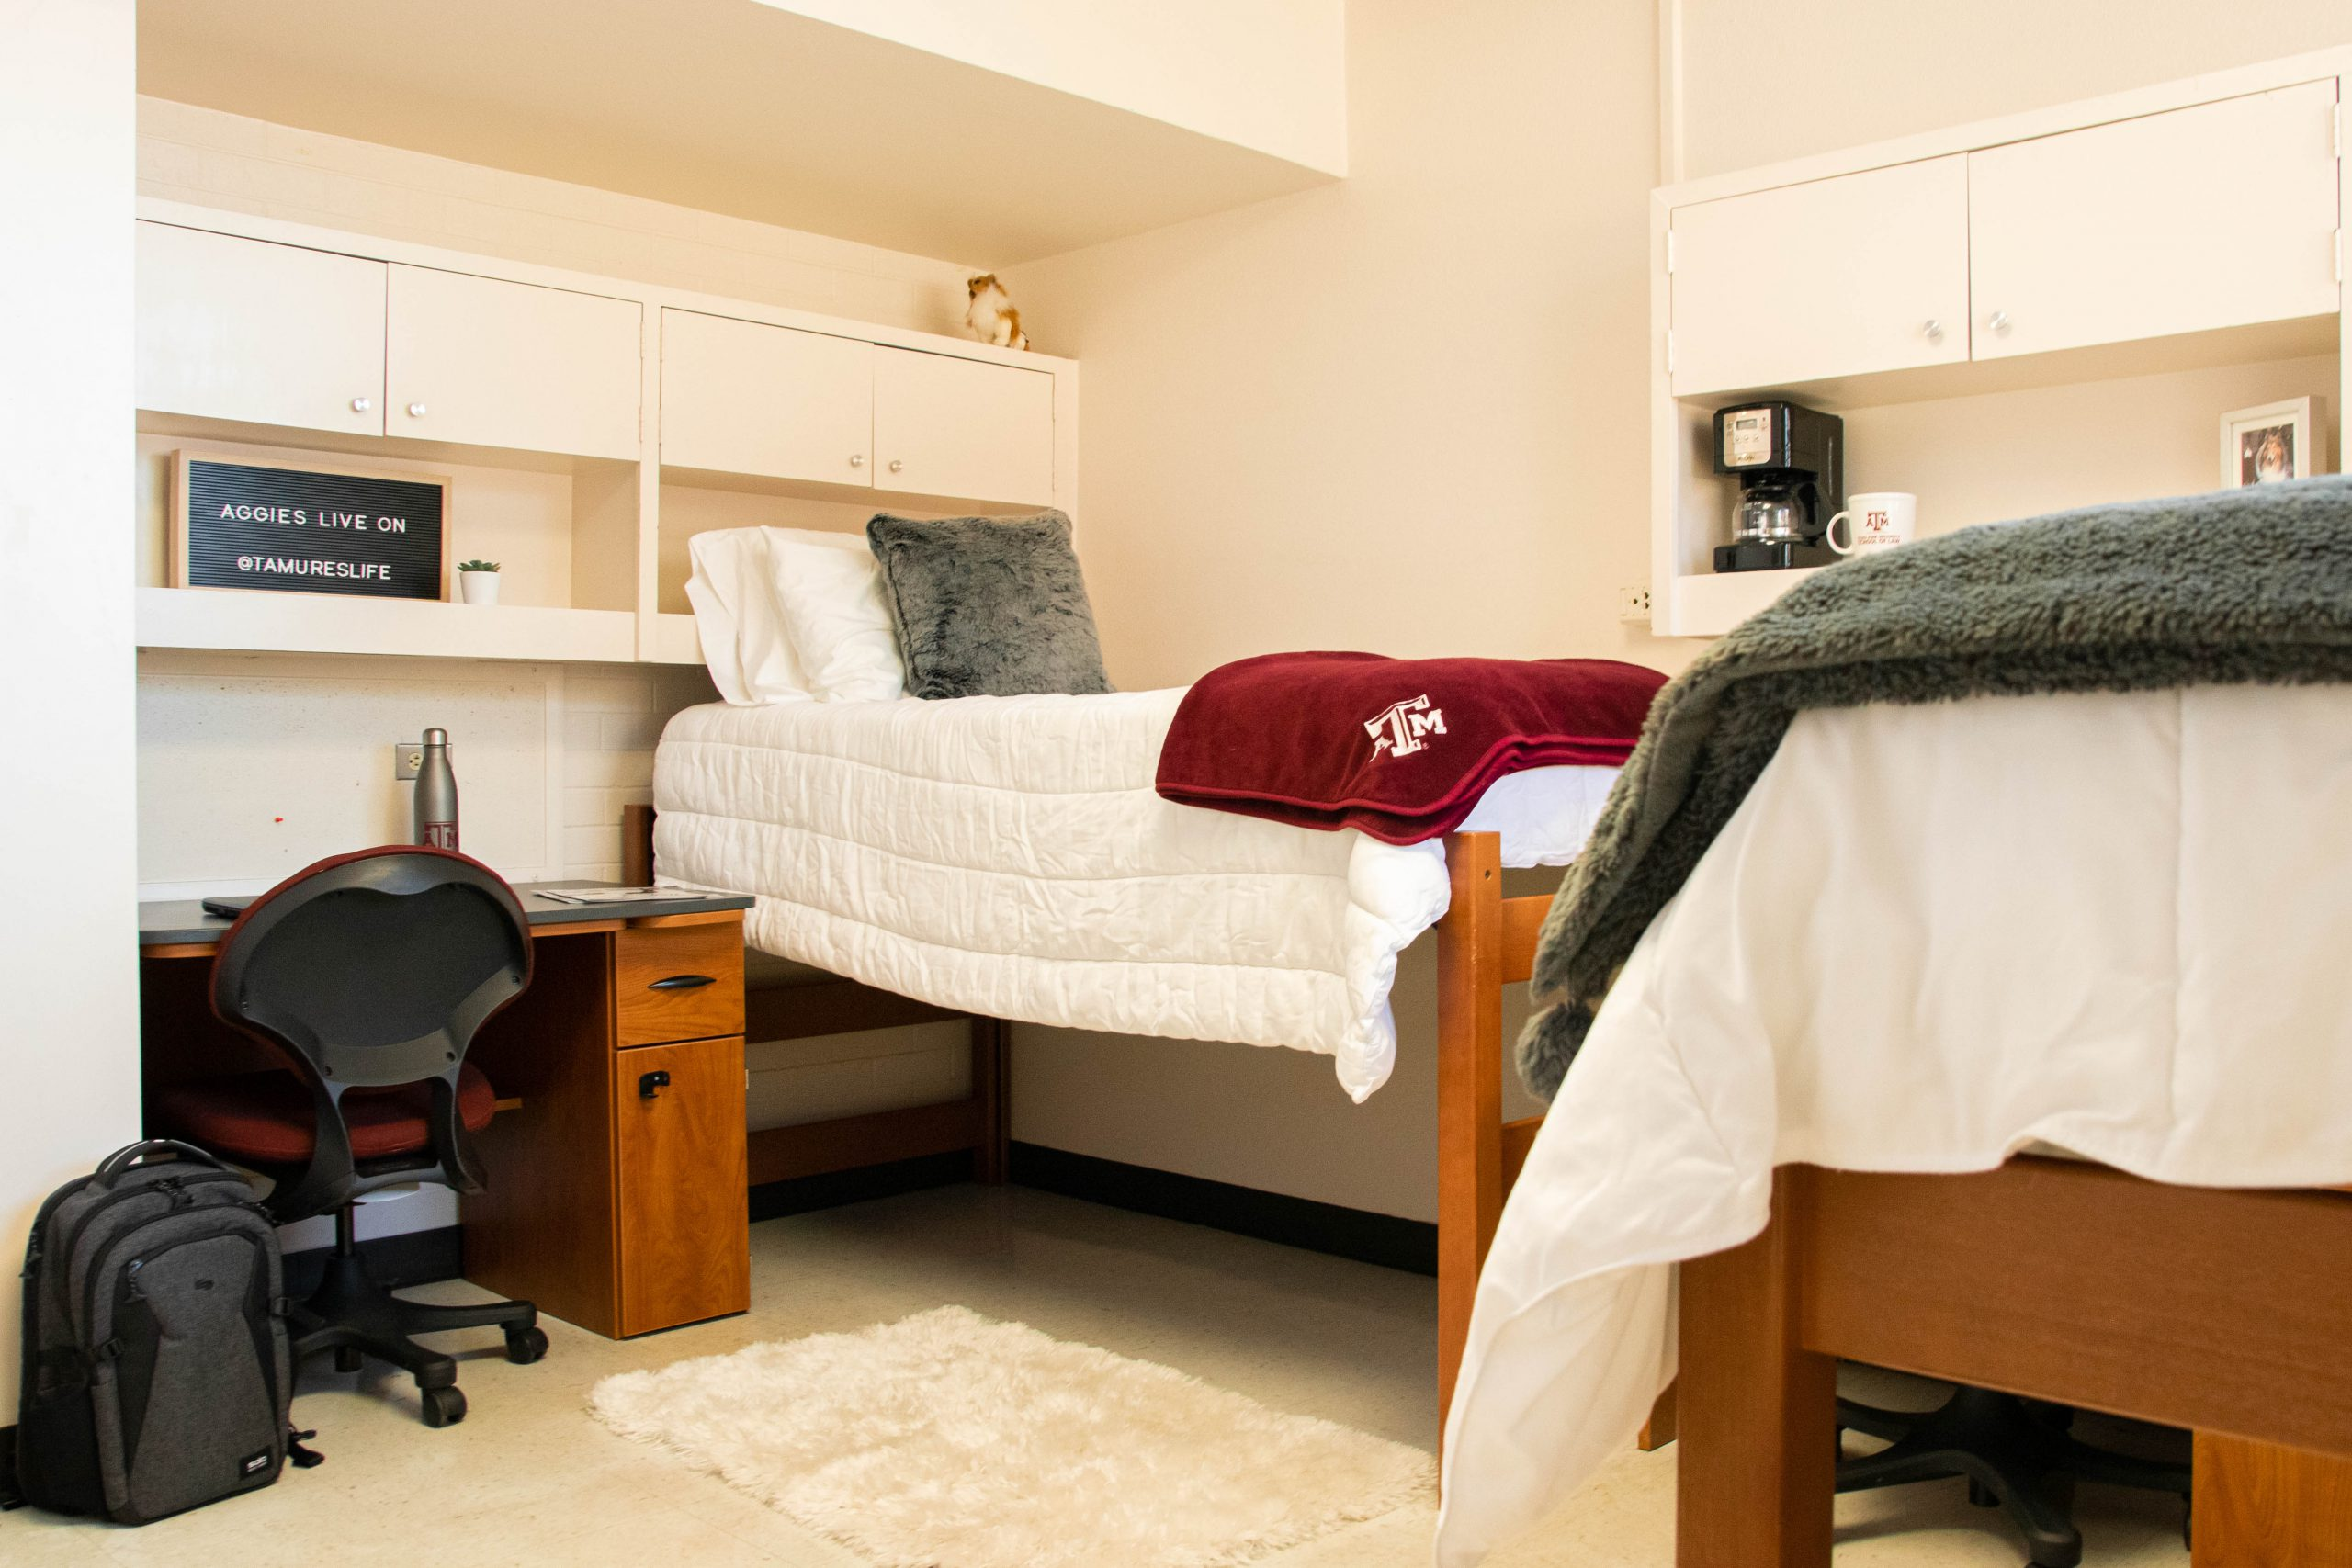 2 lofted twin-size beds, one study desk and chair, 3 cabinet storage spaces above beds